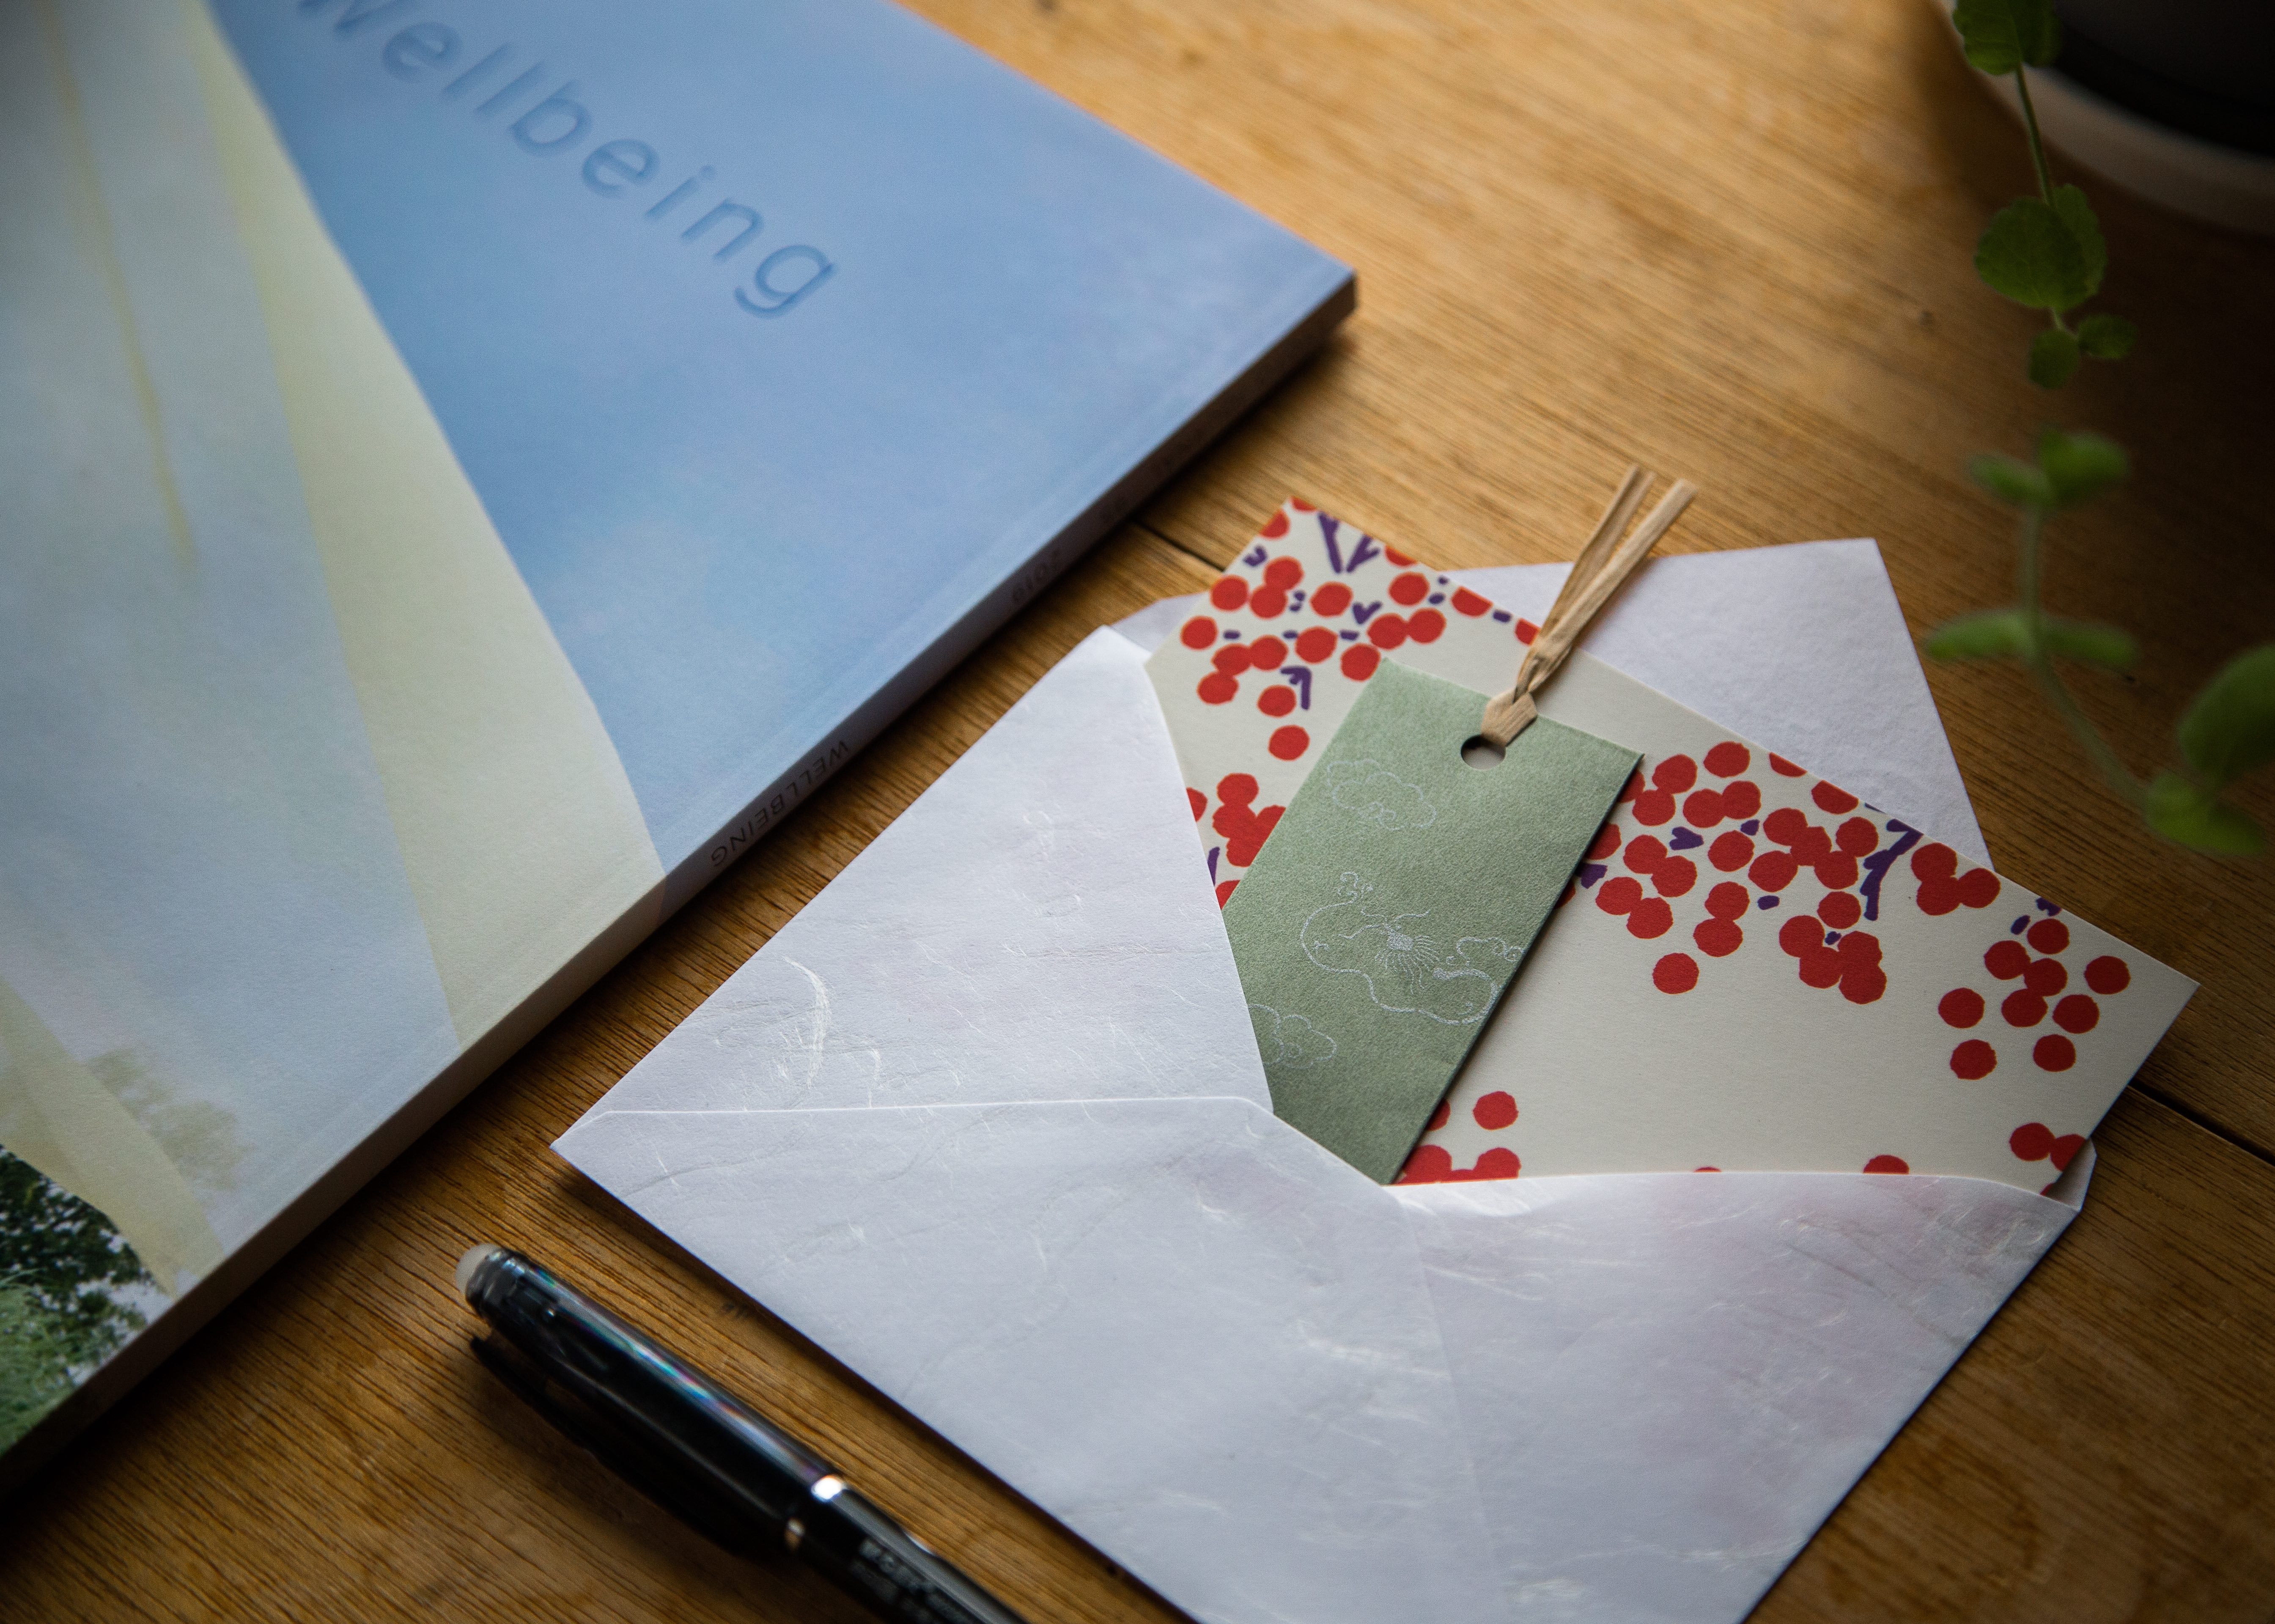 Shoyeido incense greeting card wellbeing issue